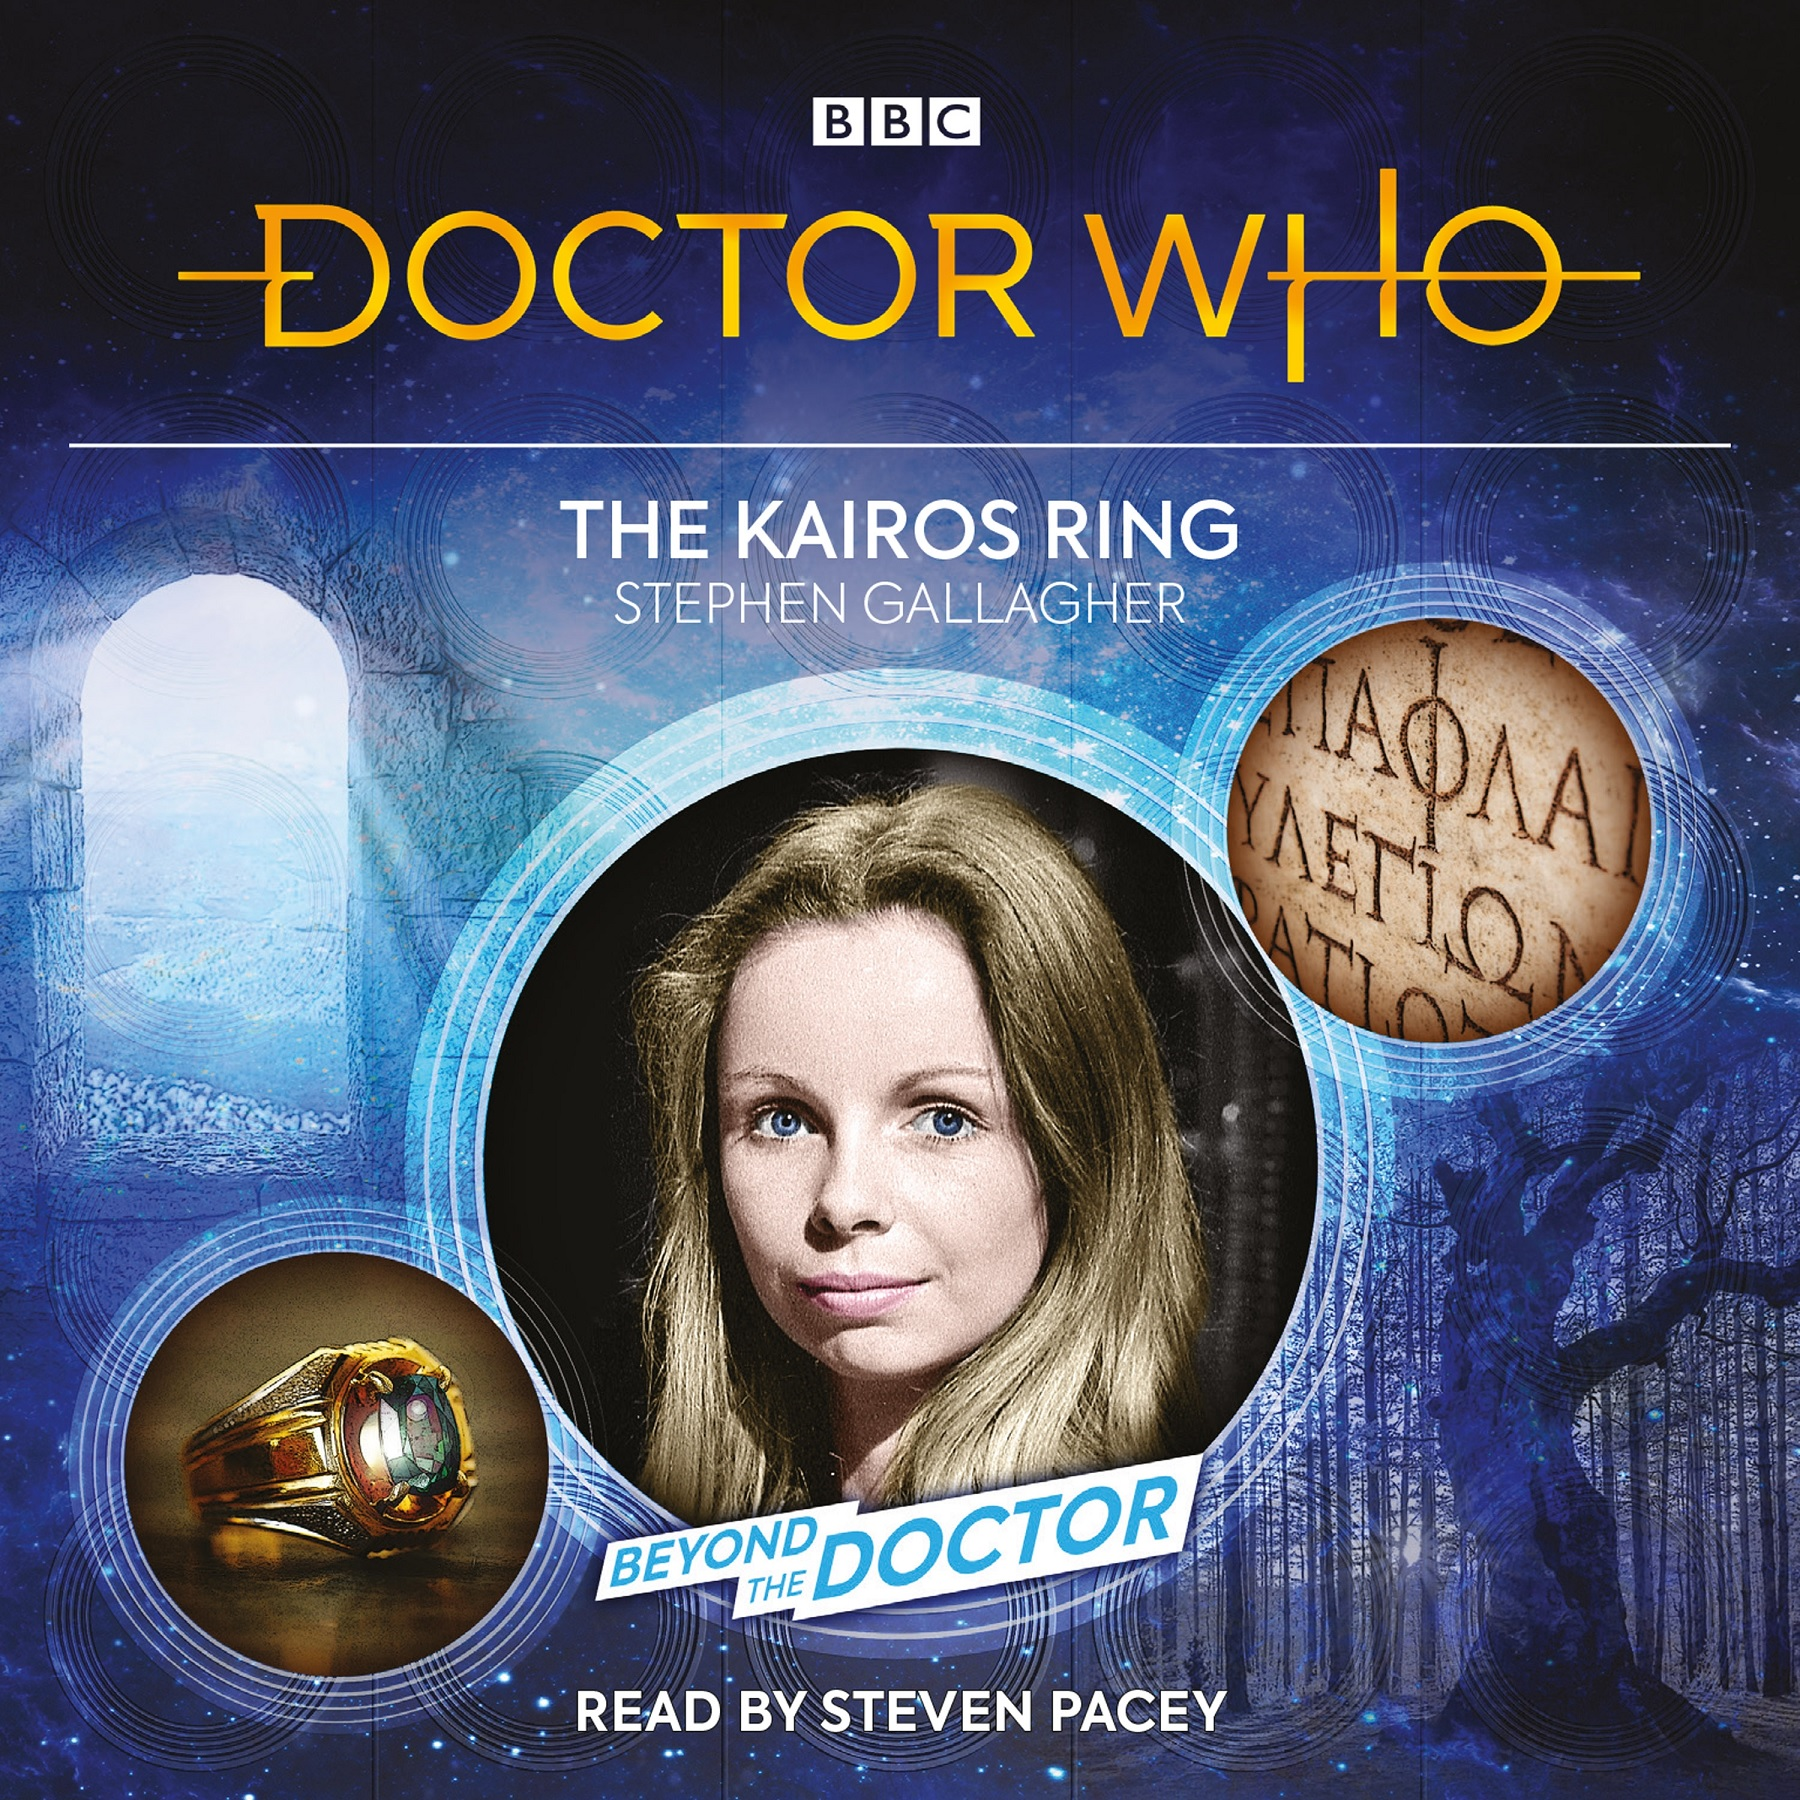 Reviewed: Doctor Who's Beyond the Doctor – The Kairos Ring